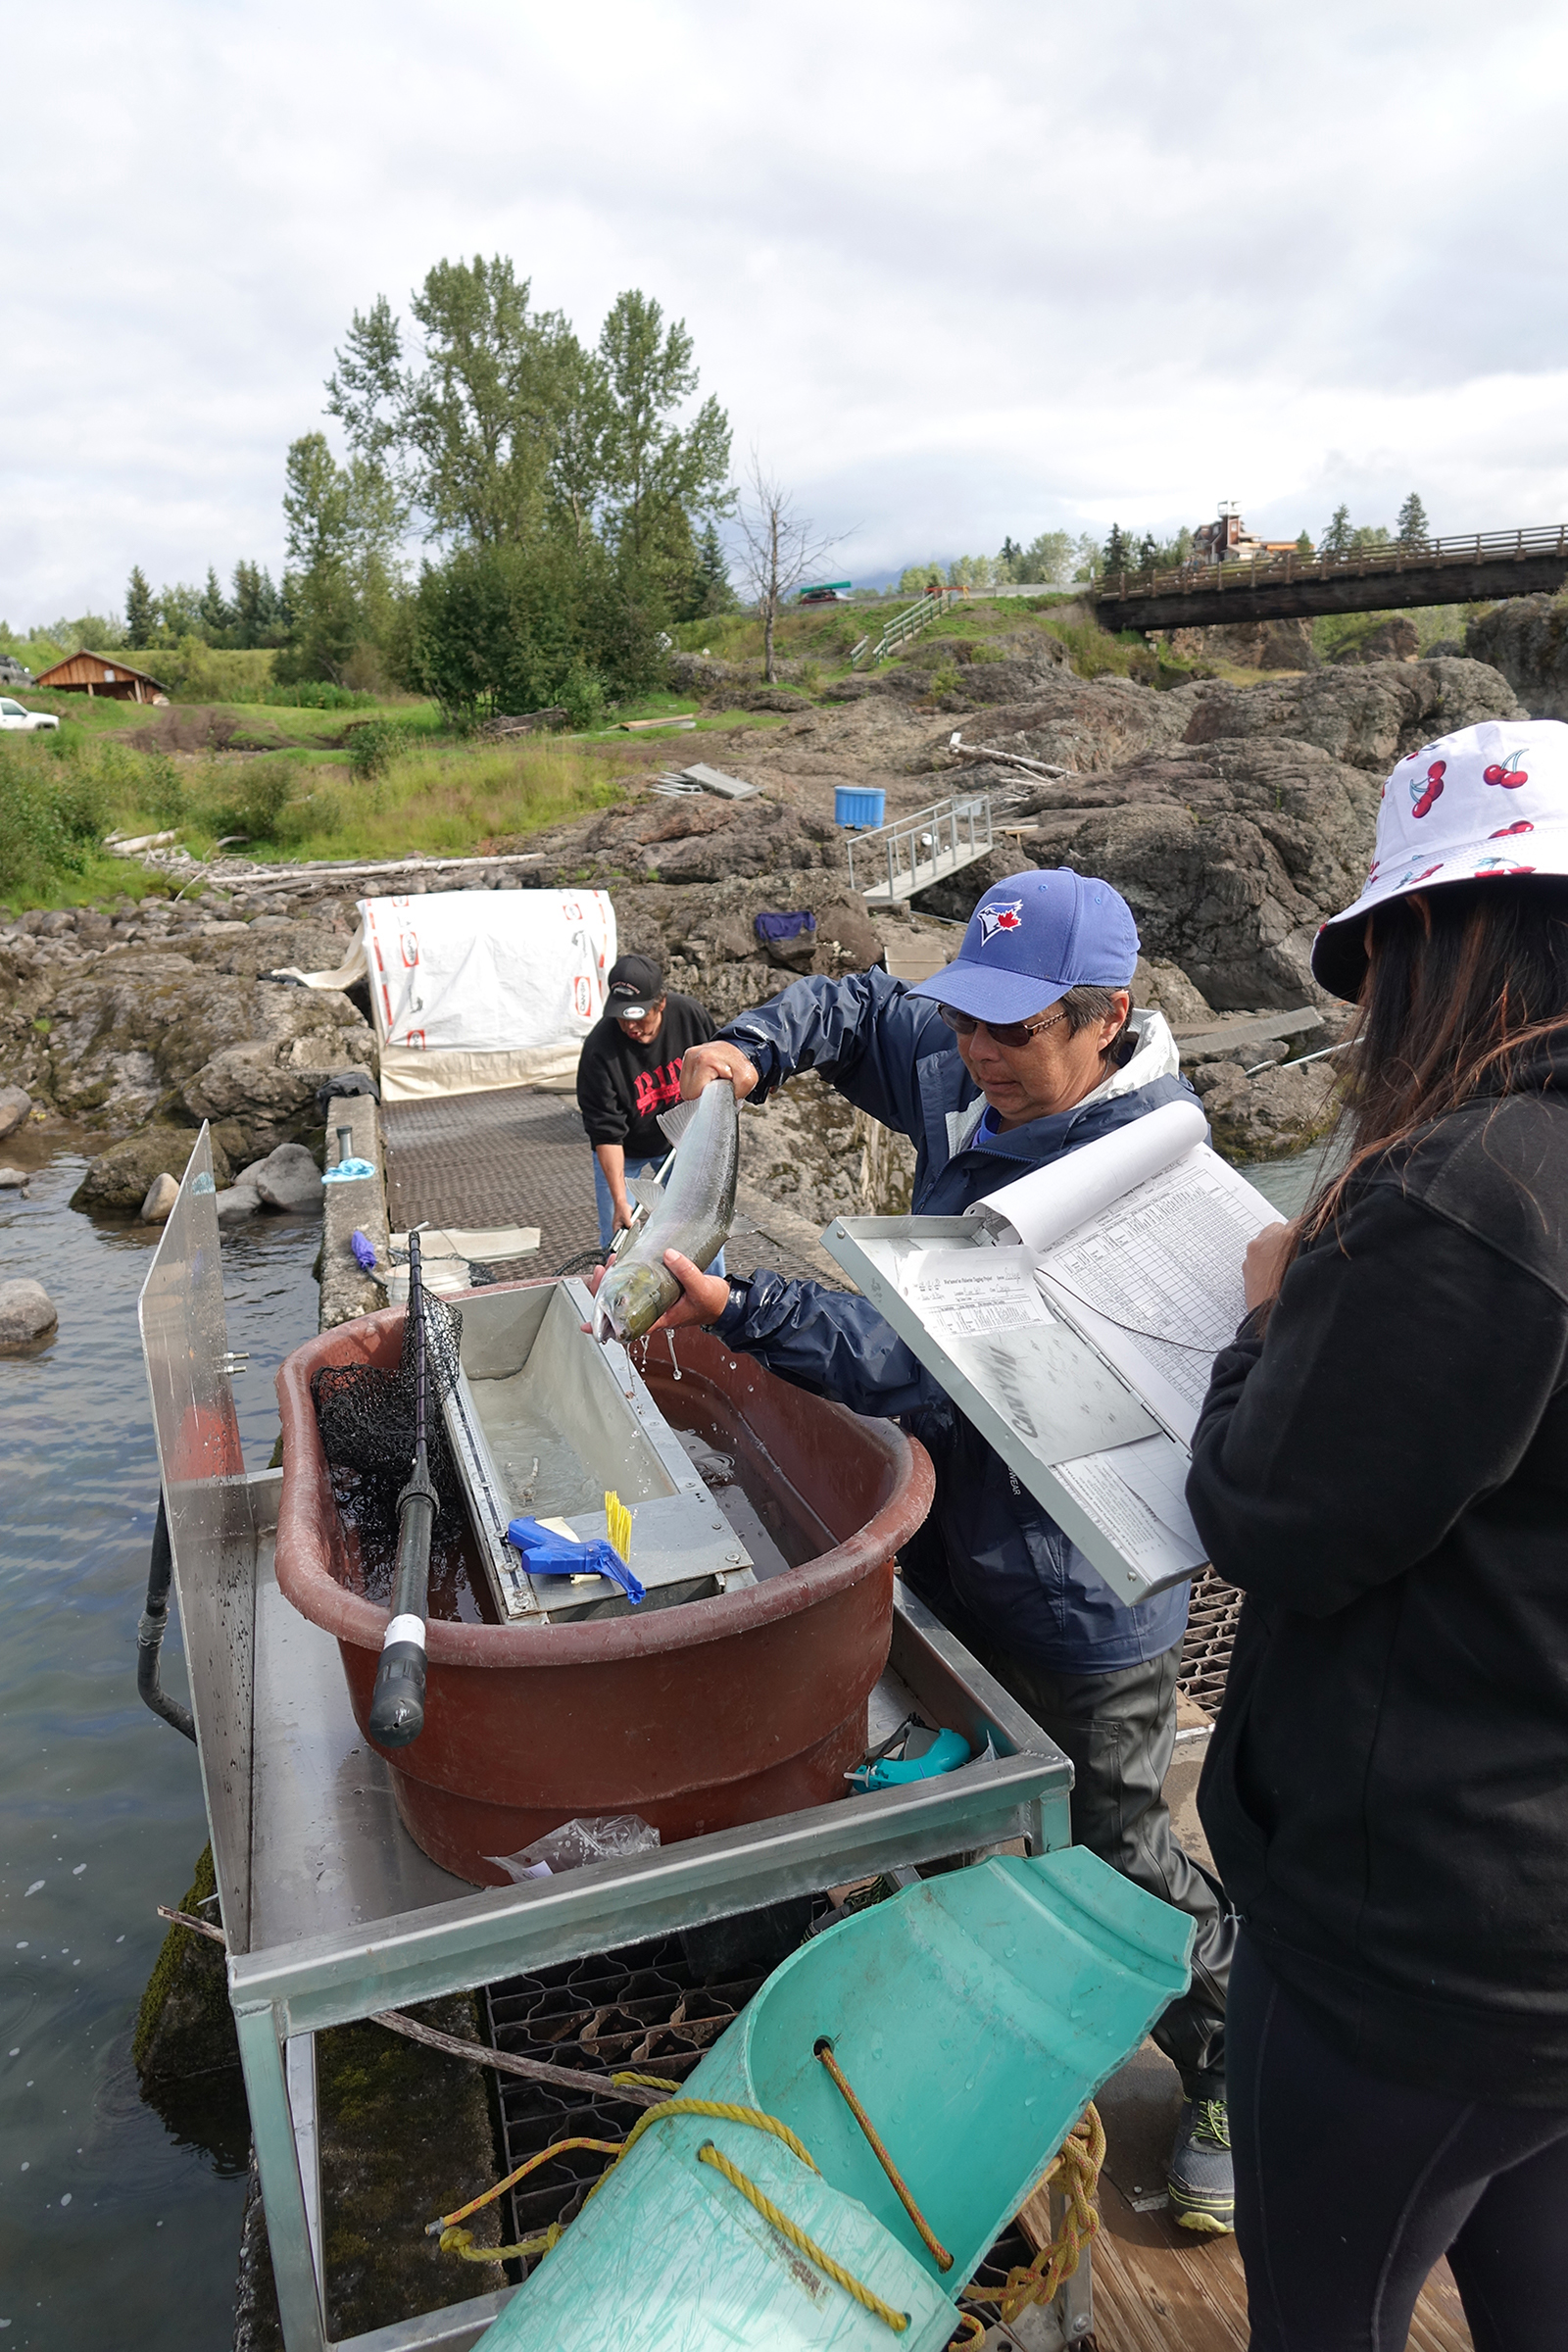 Yolanda Alfred (left) and assistant Mackenzie Michell (right) are measuring and weighing a recently captured sockeye salmon at Witset Canyon on the Bulkley River, a tributary that feeds the Skeena River. Half of the sockeye captured here by Wet'suwet'en First Nations traditional fishers will be kept for food, and the other half tagged, measured, weighed, and released to continue their journey upriver to spawn. Photograph by Lesley Evans Ogden